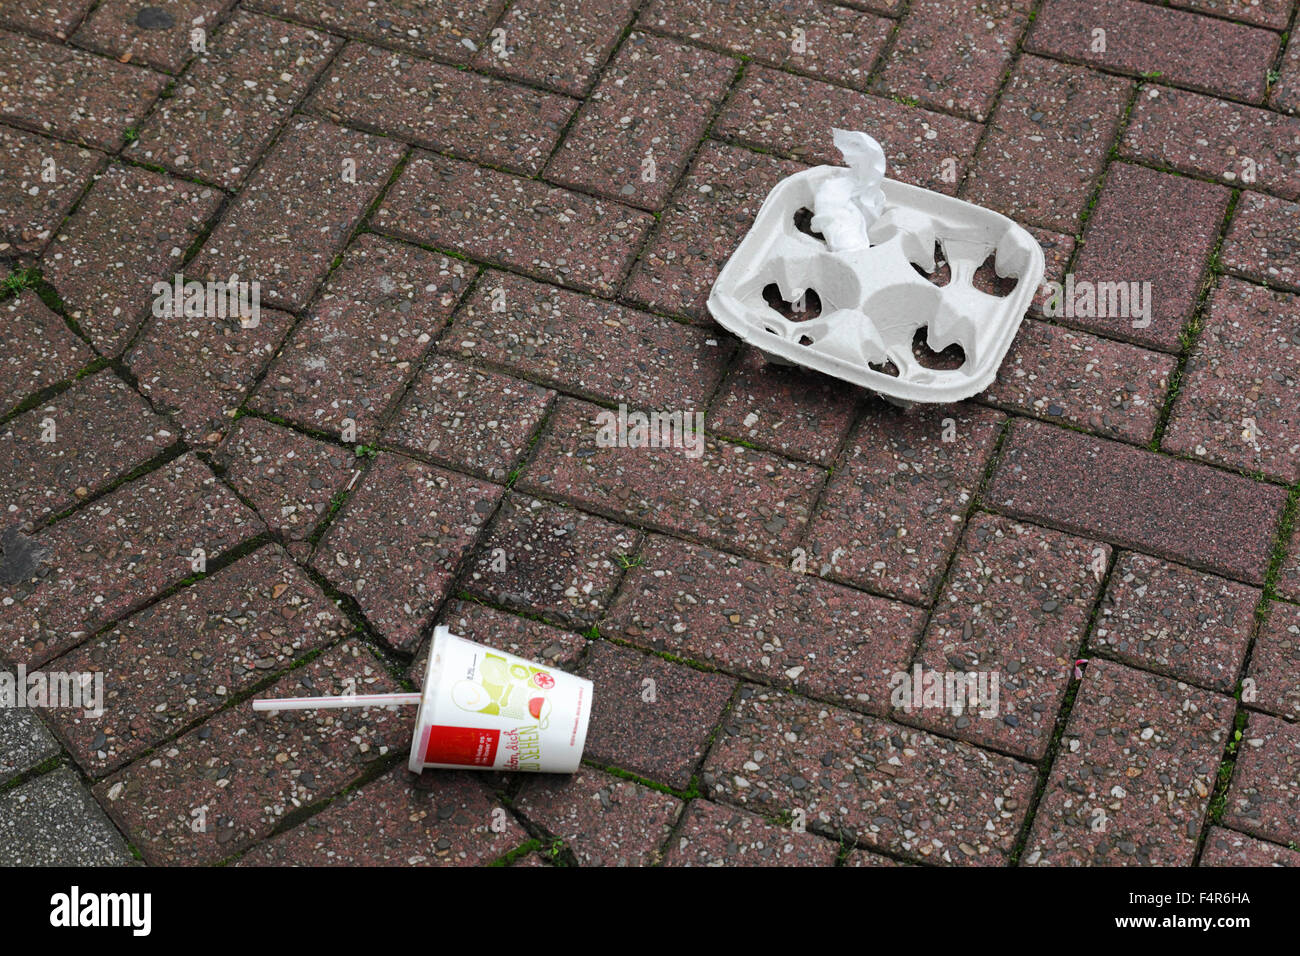 environment, ecological awareness, cleanliness, cleanness, dirtying, pollution, soiling, street cleaning, packaging - Stock Image